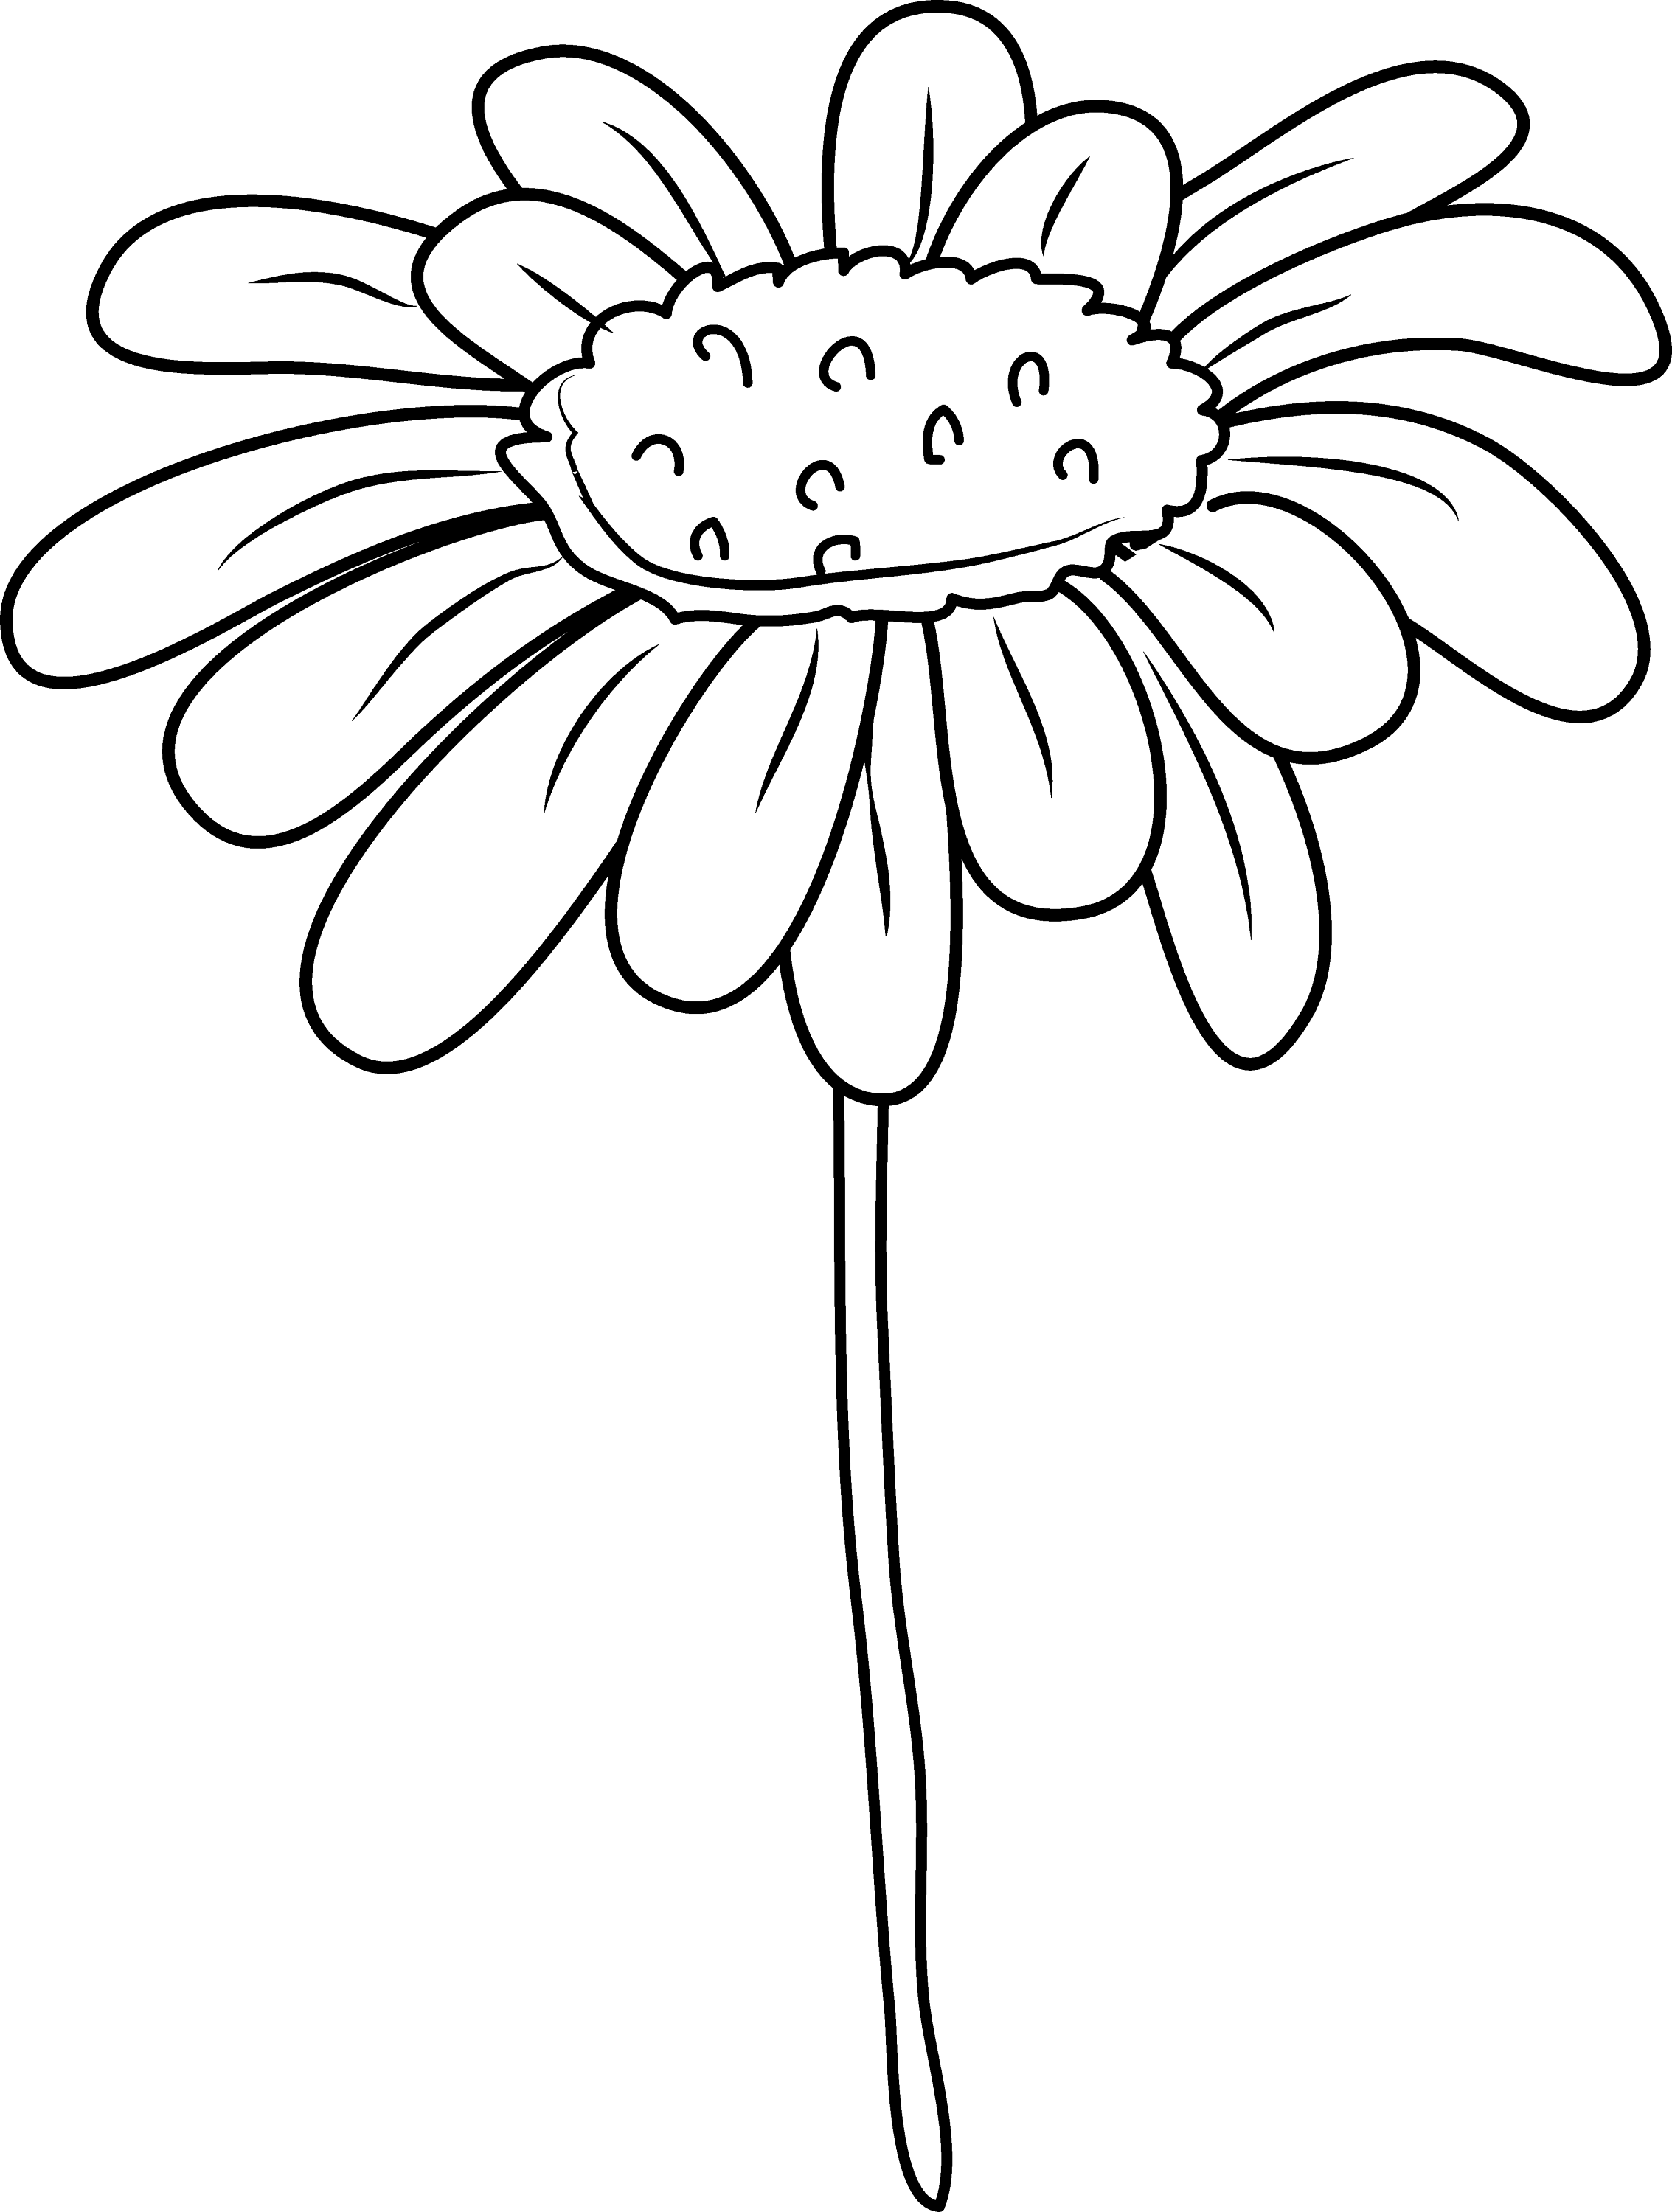 coloring flower clipart black and white daisy flower coloring page free clip art white black clipart coloring flower and